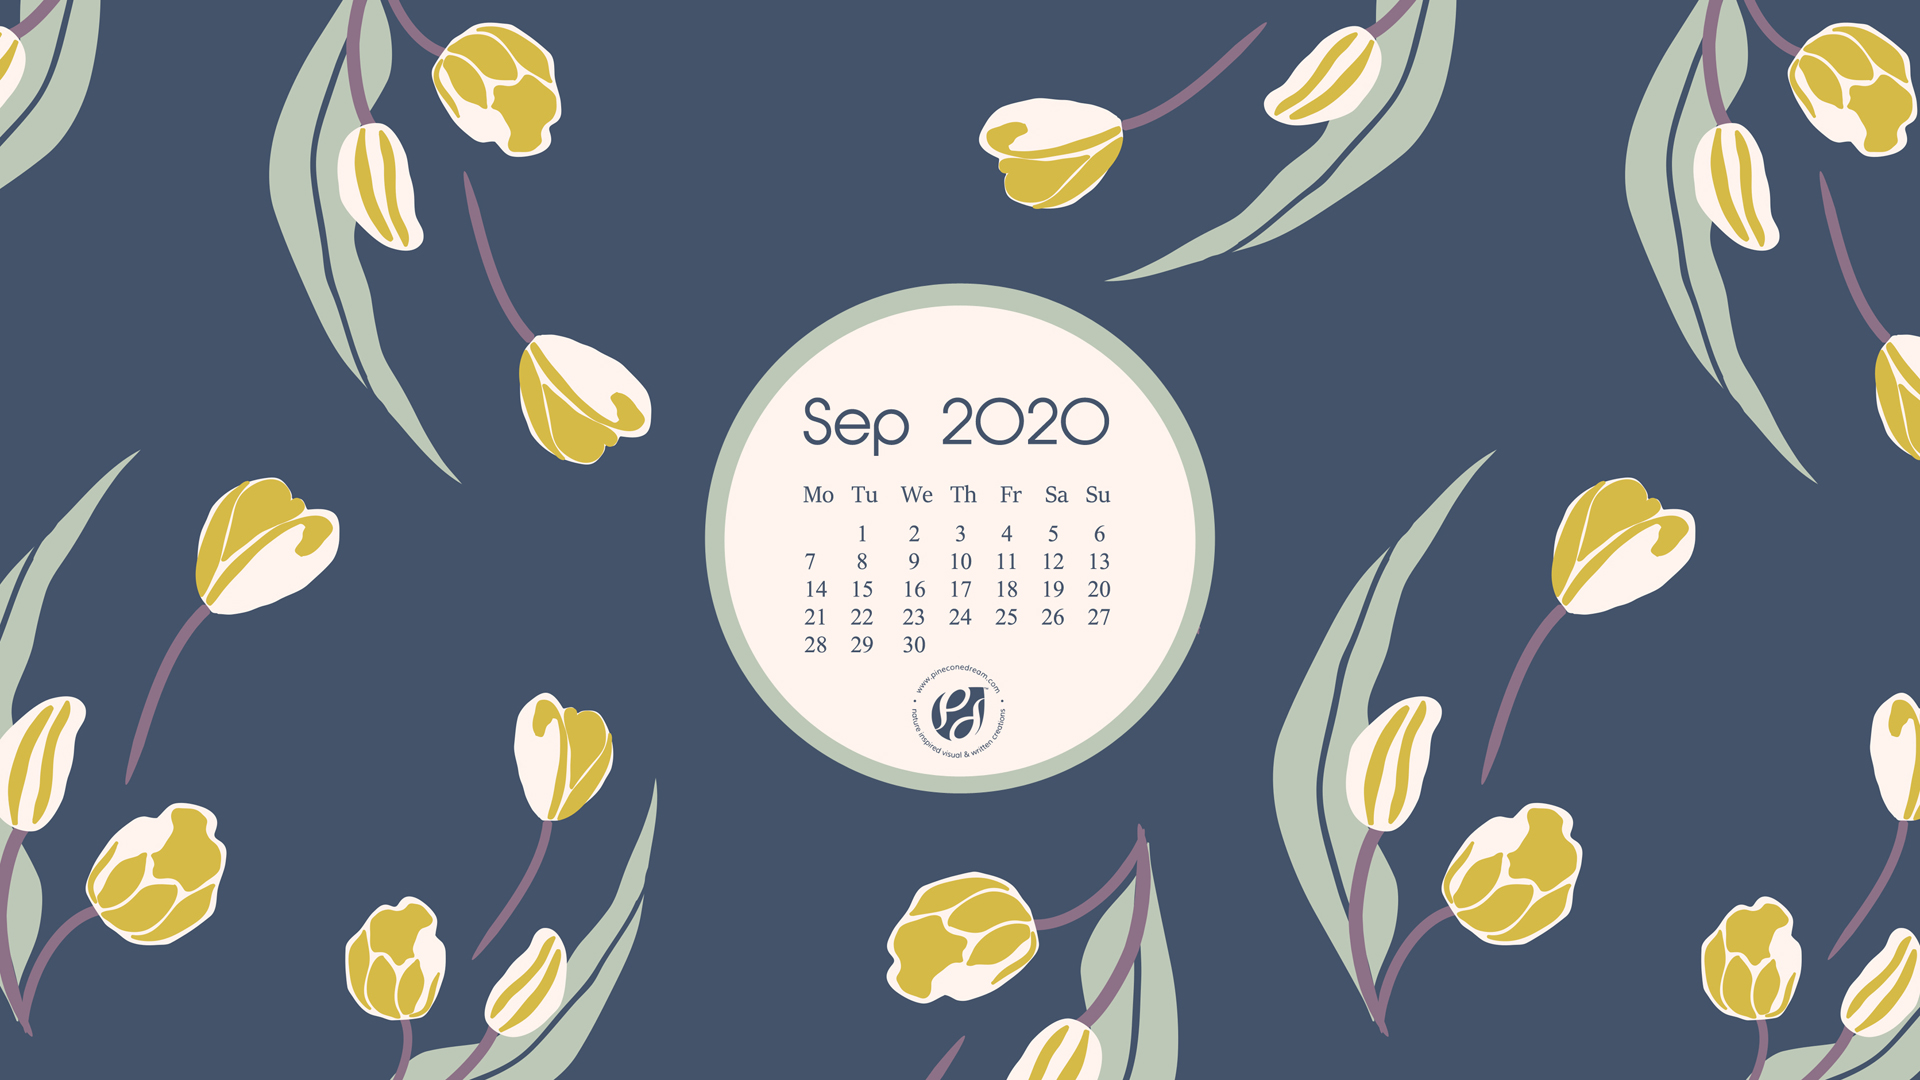 Sep 2020 Free Calendar Wallpapers Printable Planner Illustrated Summer S Last Blooms Pineconedream By Gyaneshwari Dave